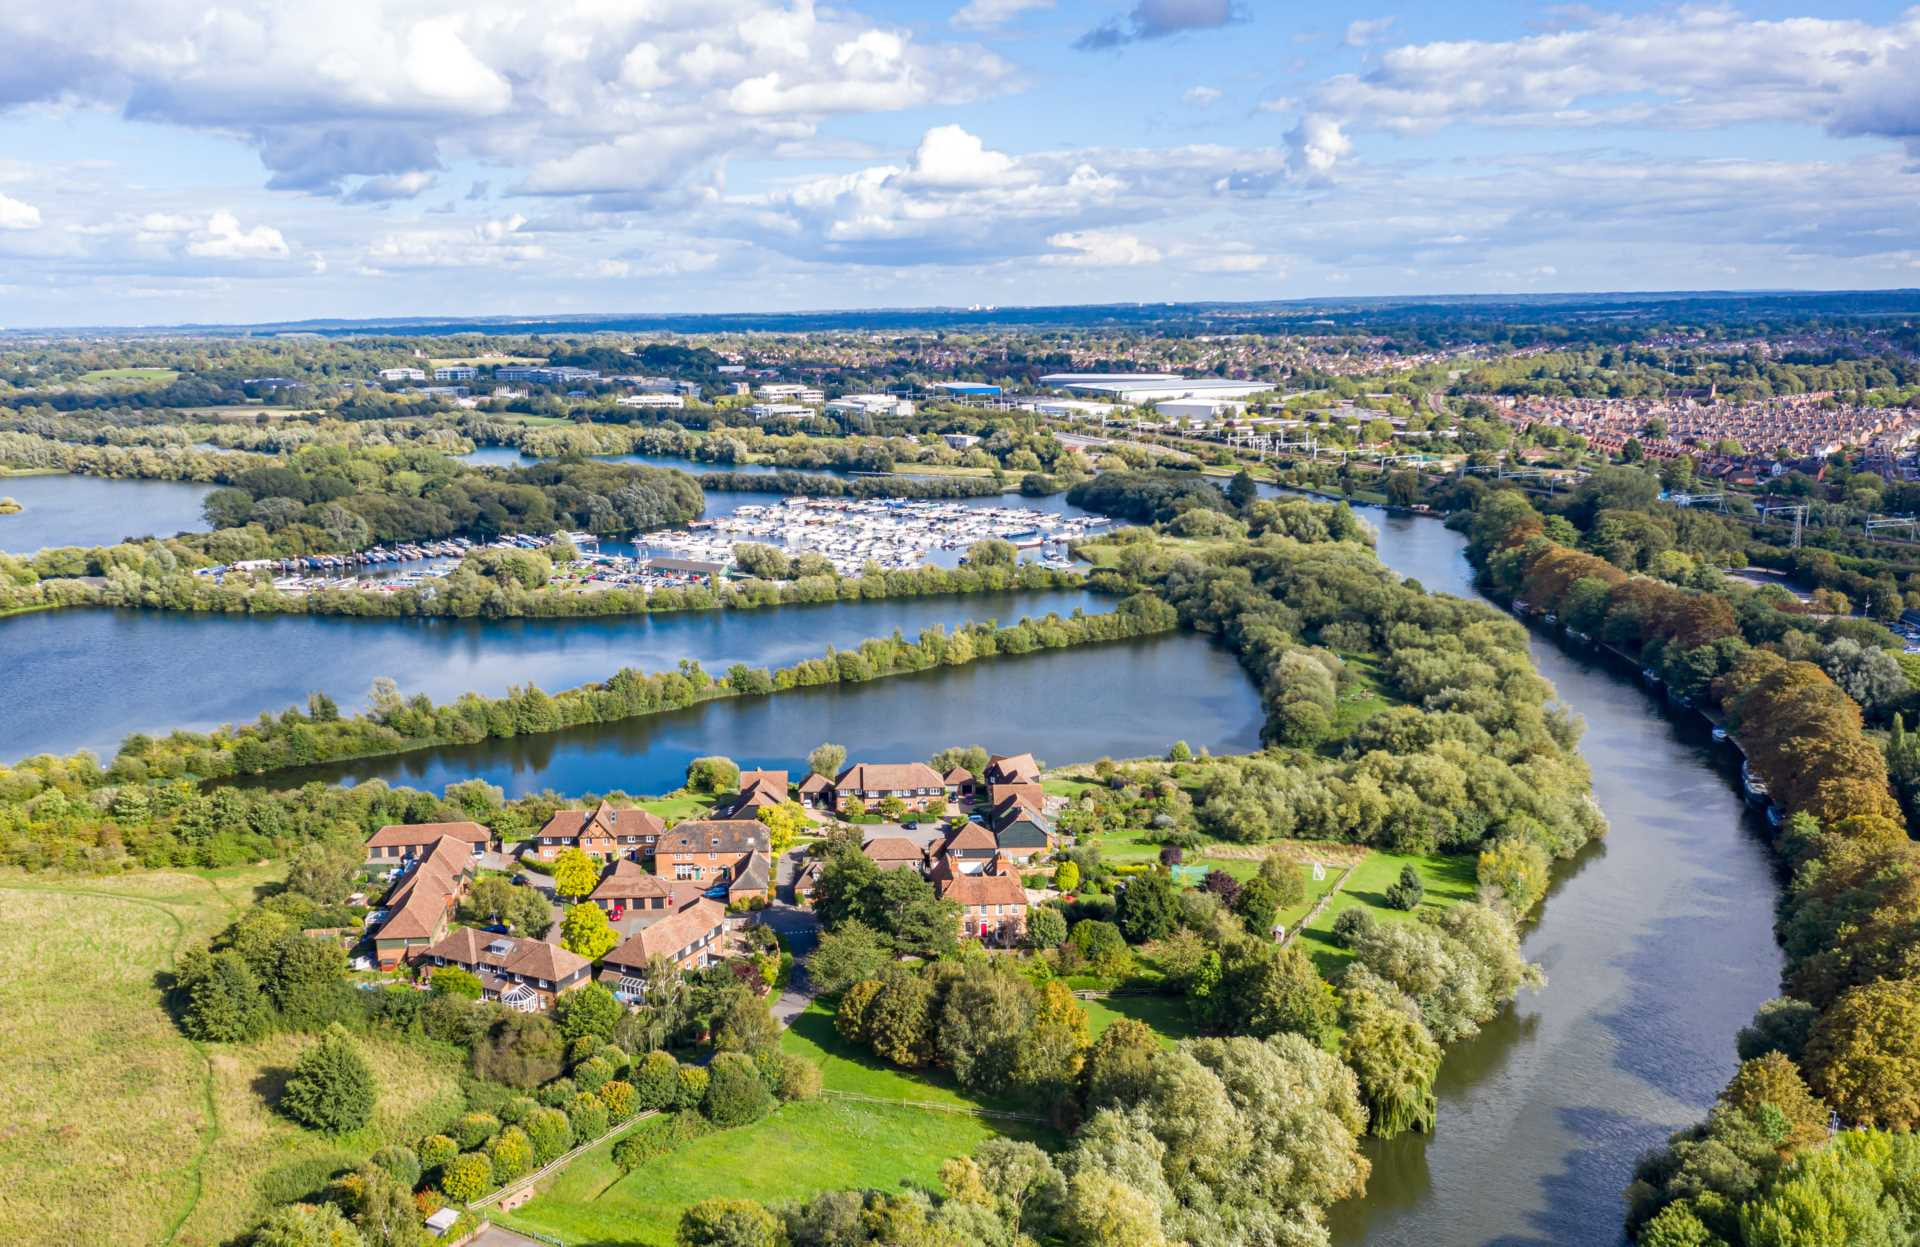 Caversham: A Beautiful Town with a Distinguished History, Countrywide Park Homes